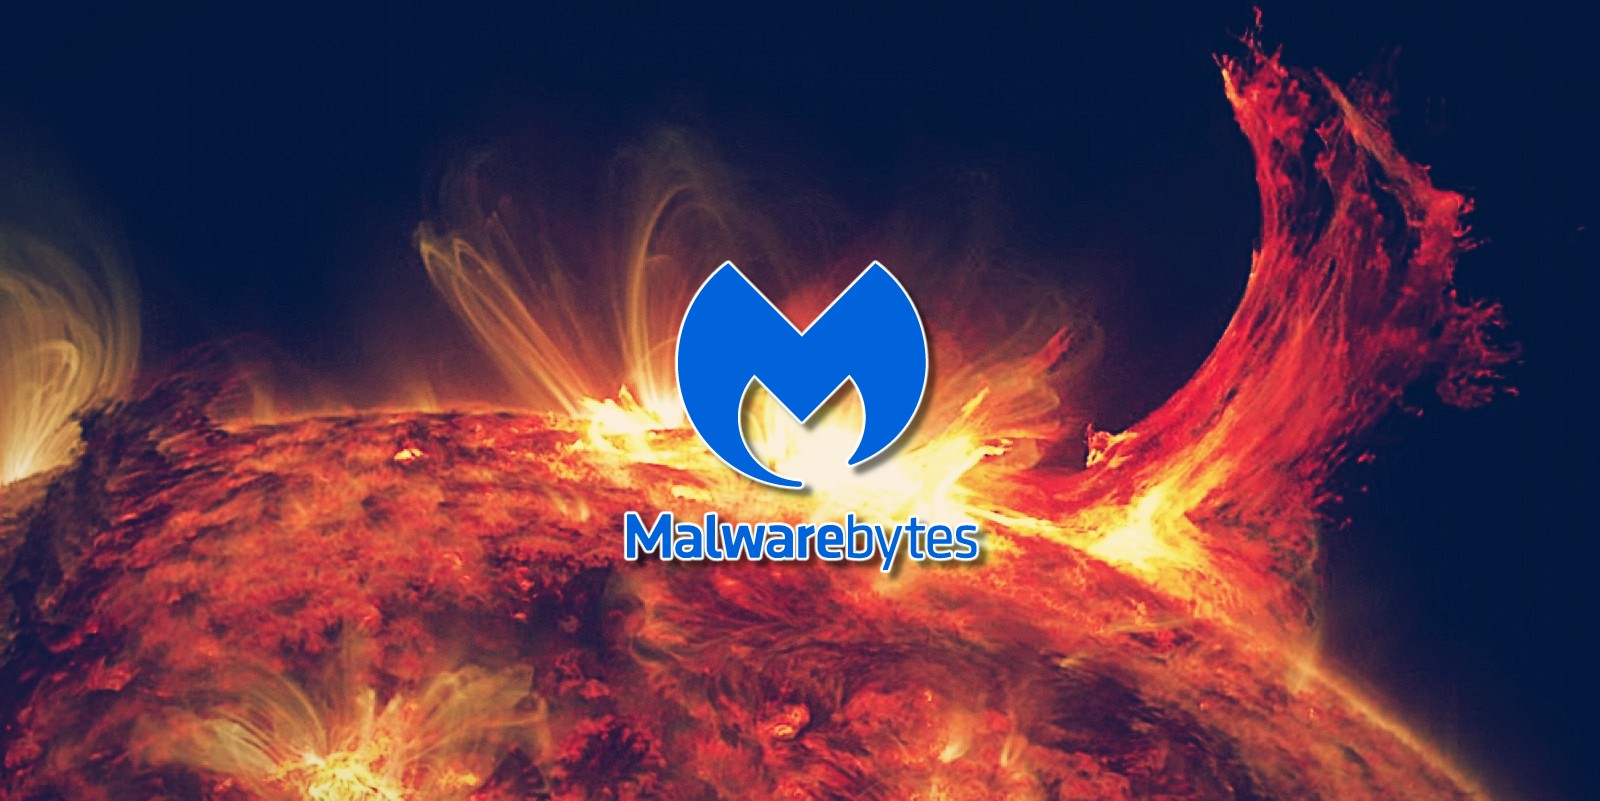 SolarWinds hackers also targeted security specialist Malwarebytes